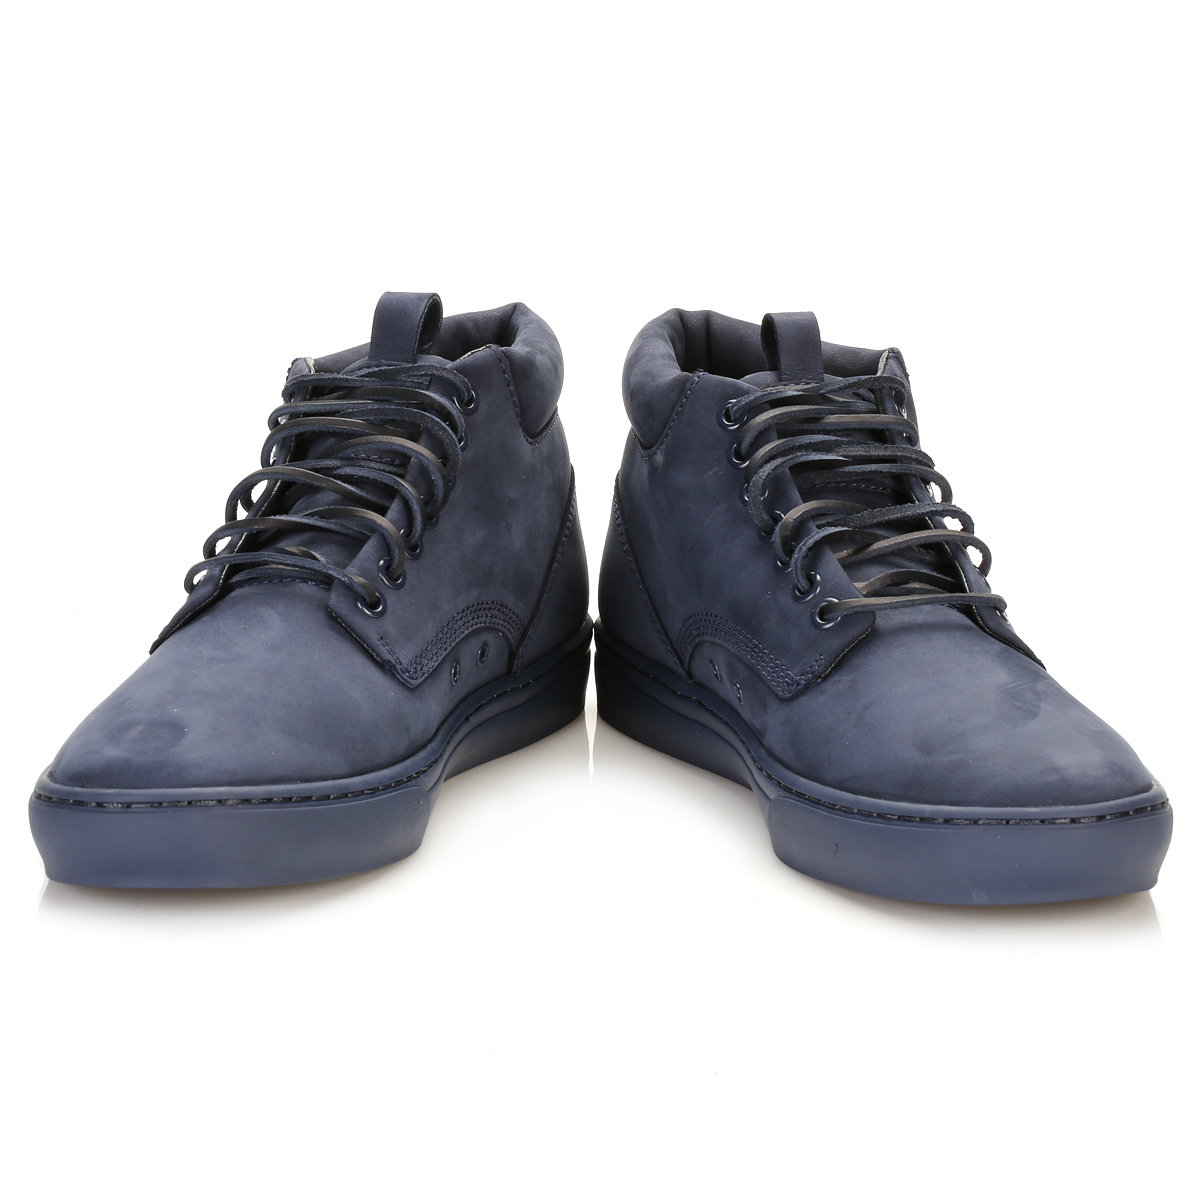 Timberland Mens Navy Blue Chukka Boots, Leather, Adventure 2.0 ...